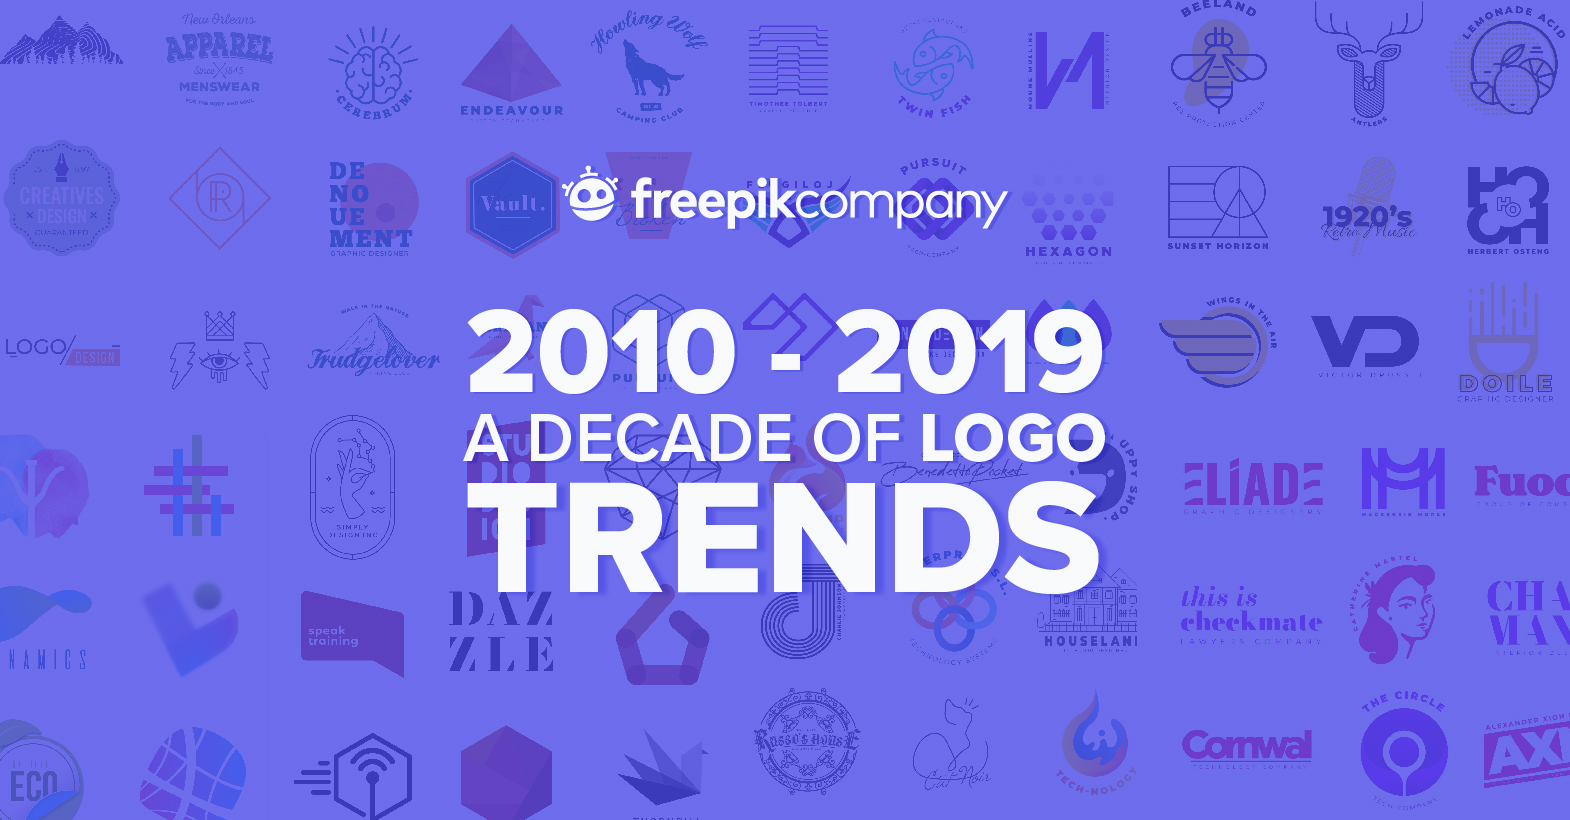 How Logo Trends Have Changed Over this Decade